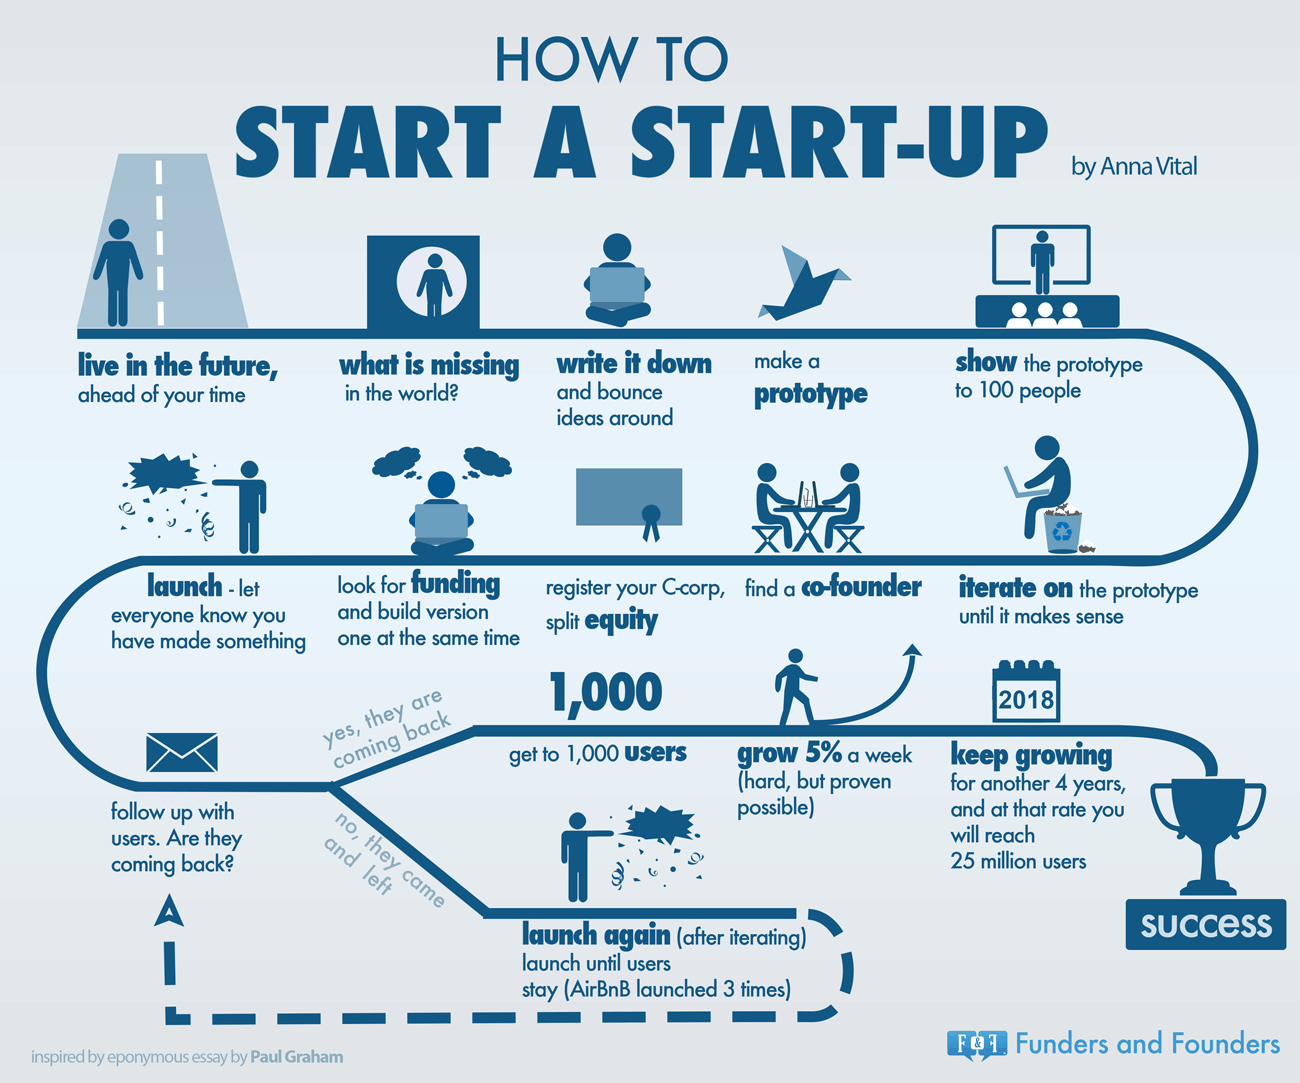 How To Start A Startup  Infographic  Biz It  Business Starting A  How To Start A Startup Paulgraham Essay Reinterpreted By Annavital